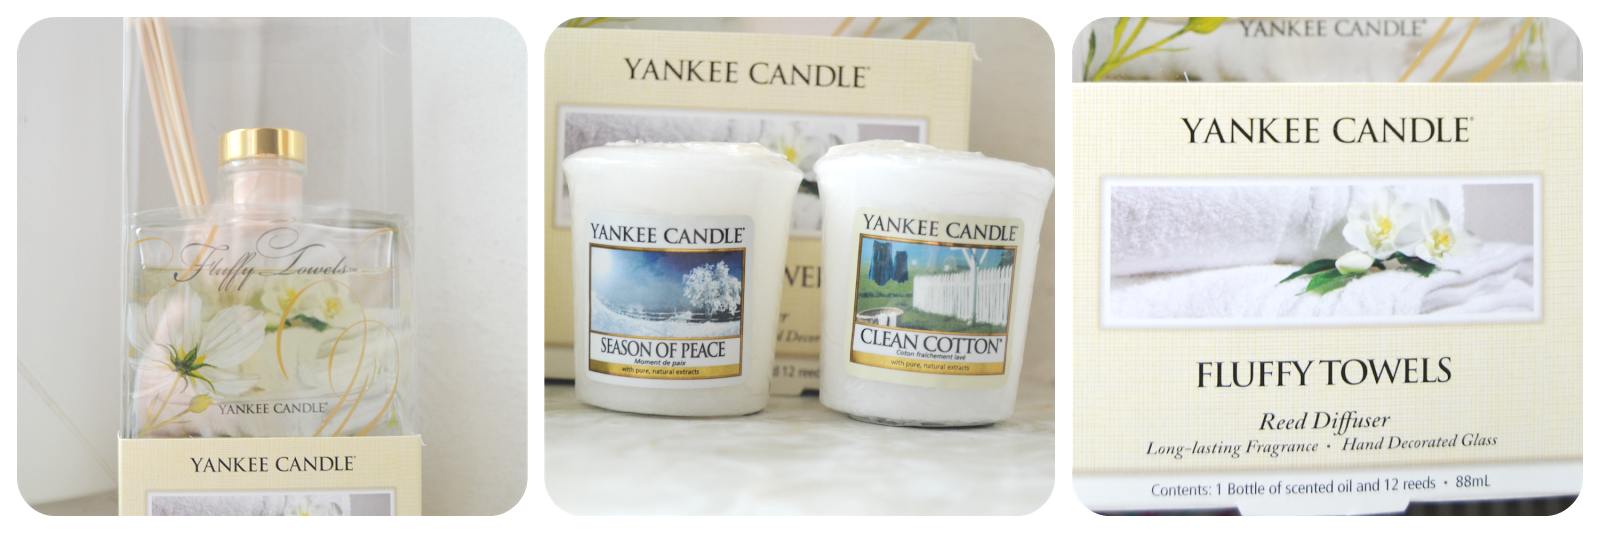 Yankee Candle Diffusor Votiv Candle Season Of Peace Clean Cotton